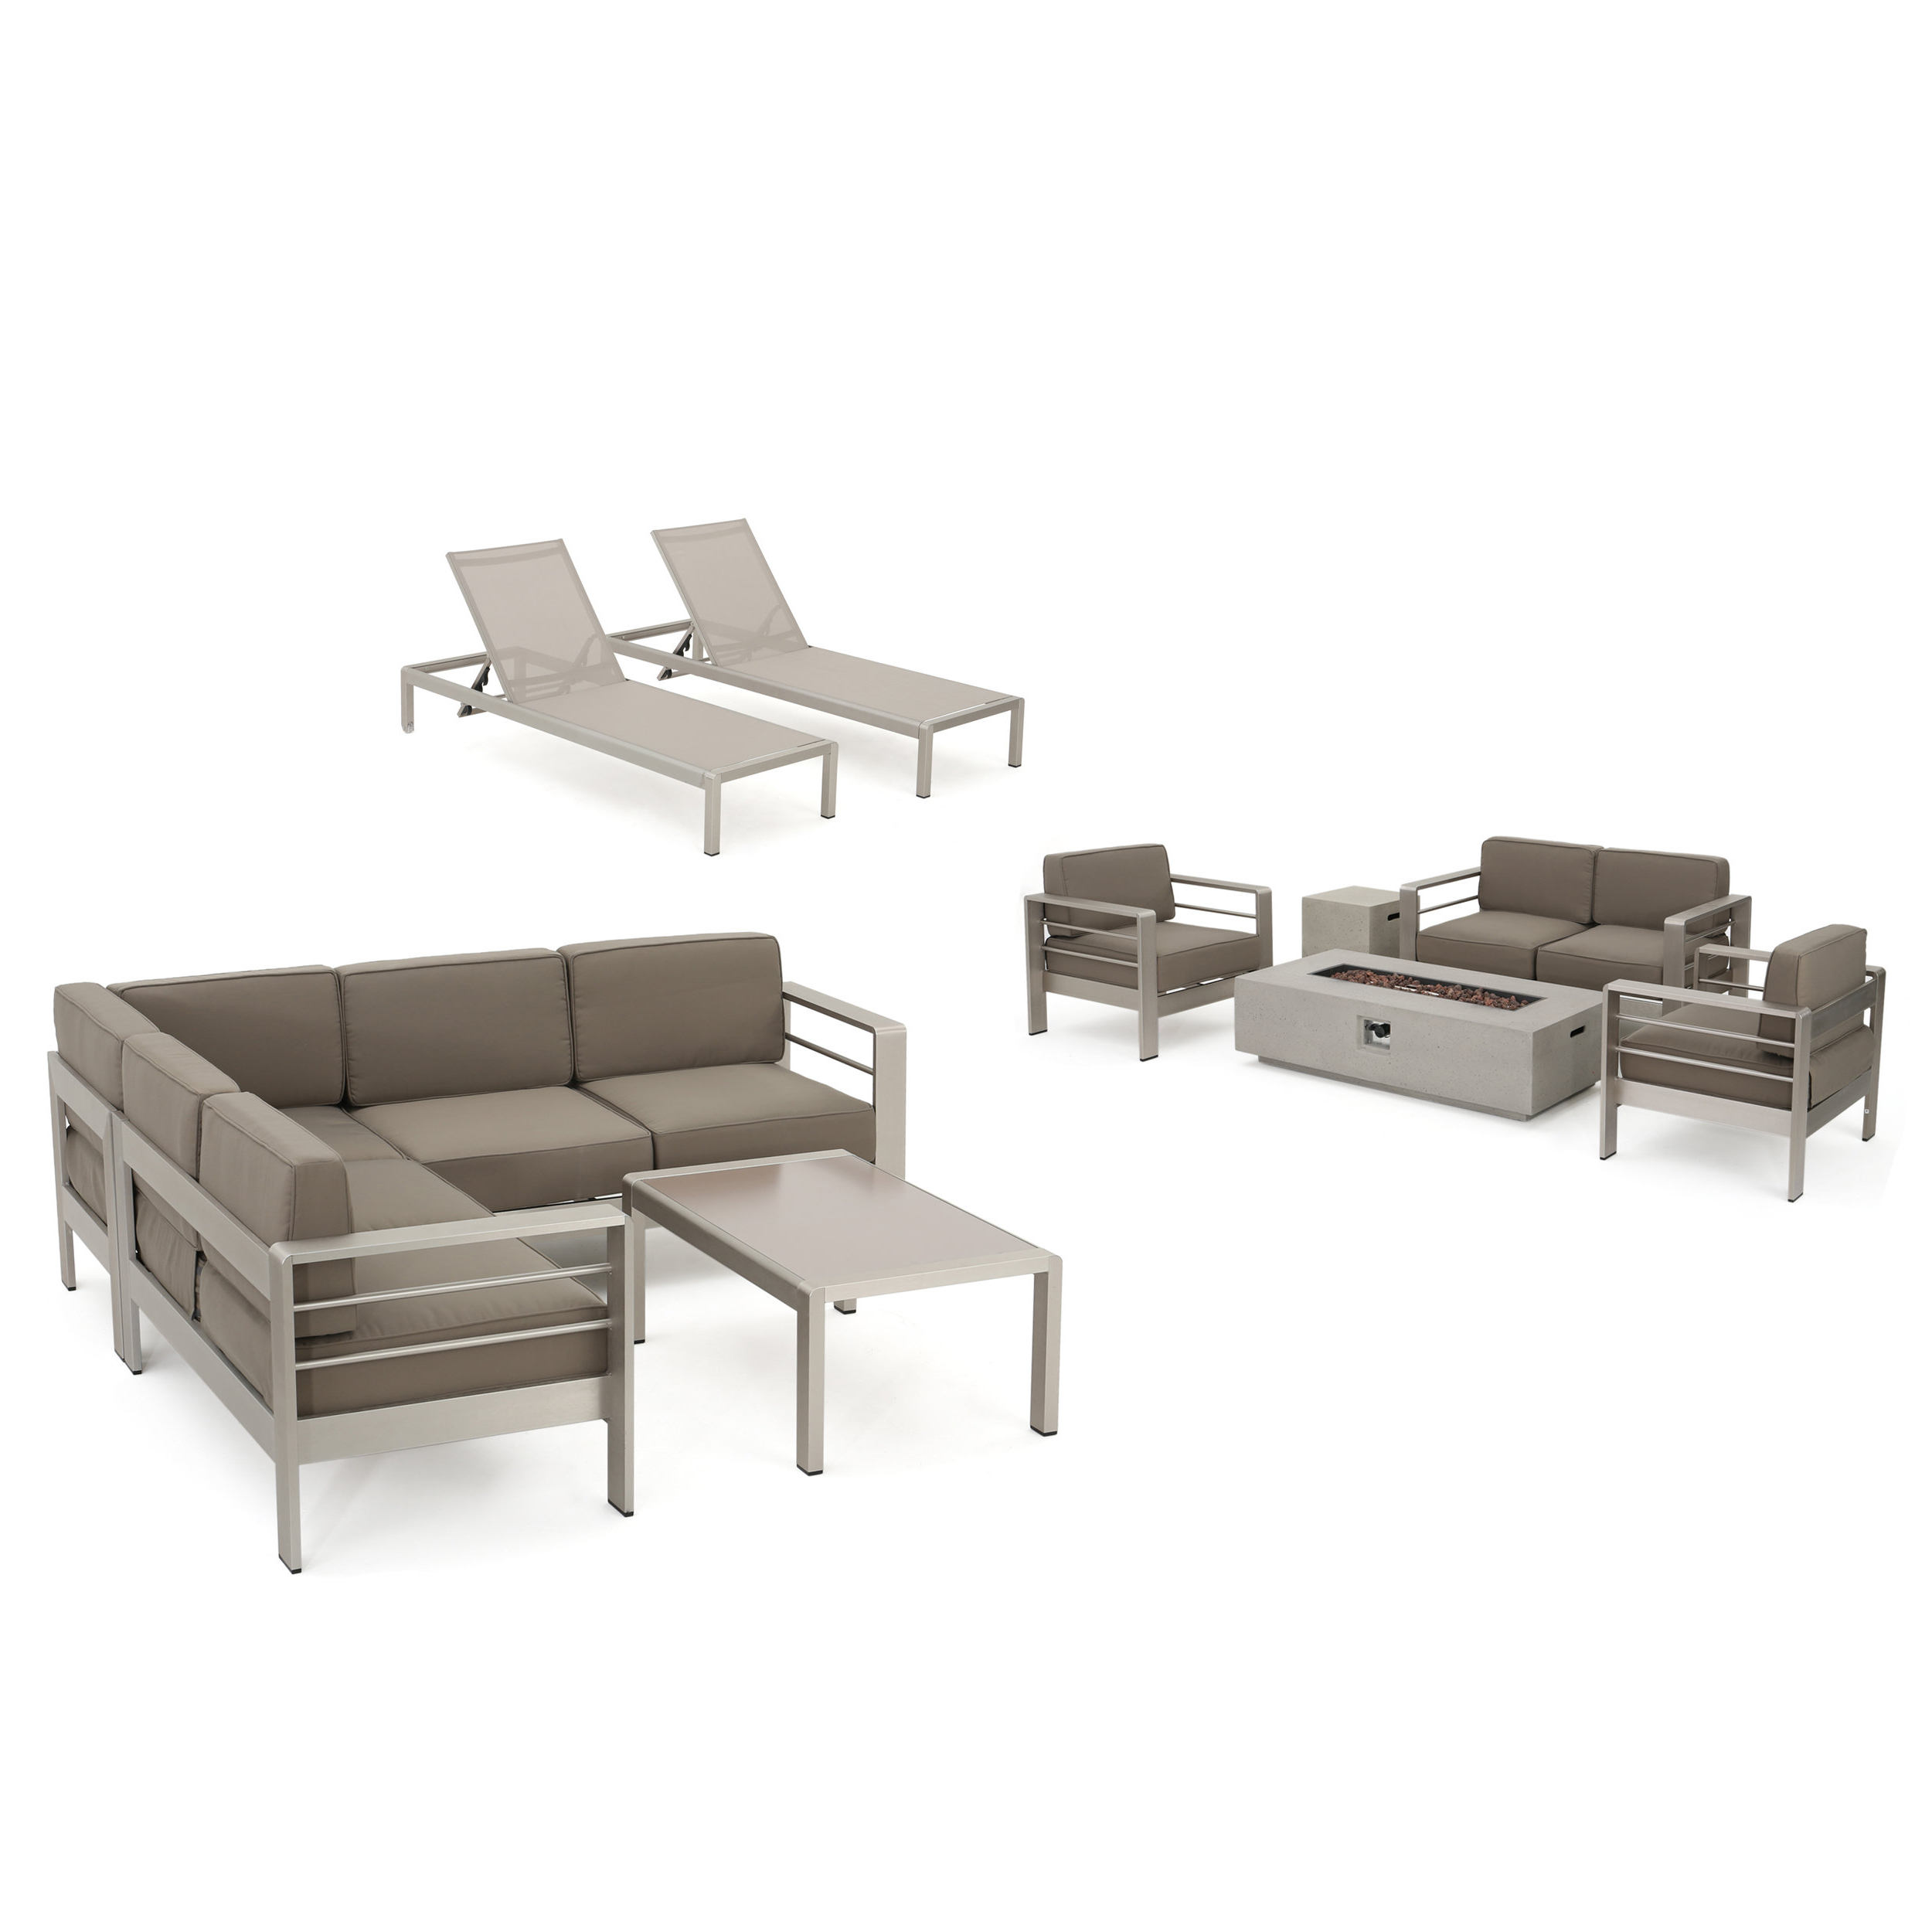 Preferred Royalston Patio Sofas With Cushions In Royalston 10 Piece Sectional Set With Cushions (View 14 of 20)